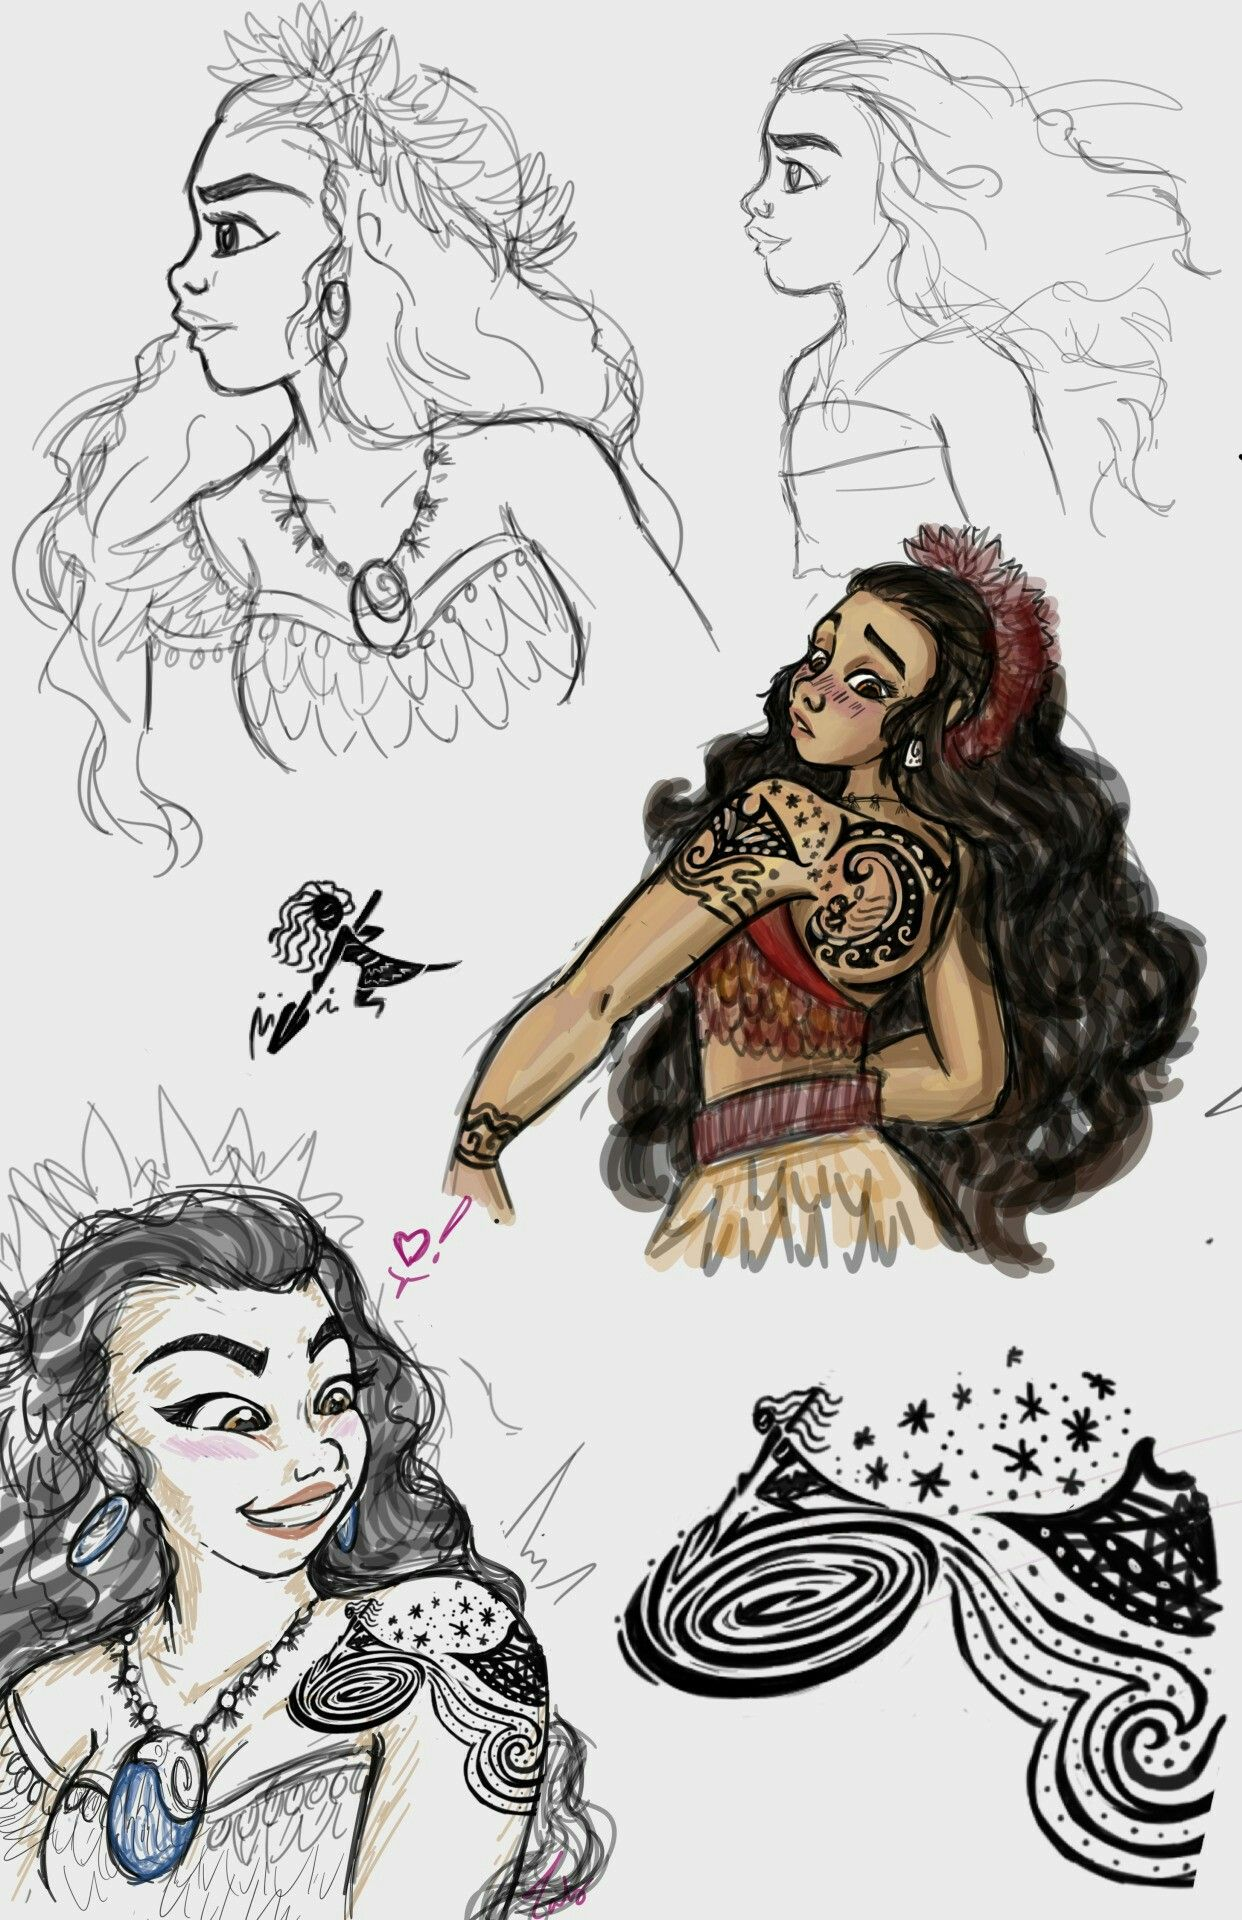 older moana love this fanart moana tattoo disney moana vaiana pinterest tattoo disney. Black Bedroom Furniture Sets. Home Design Ideas